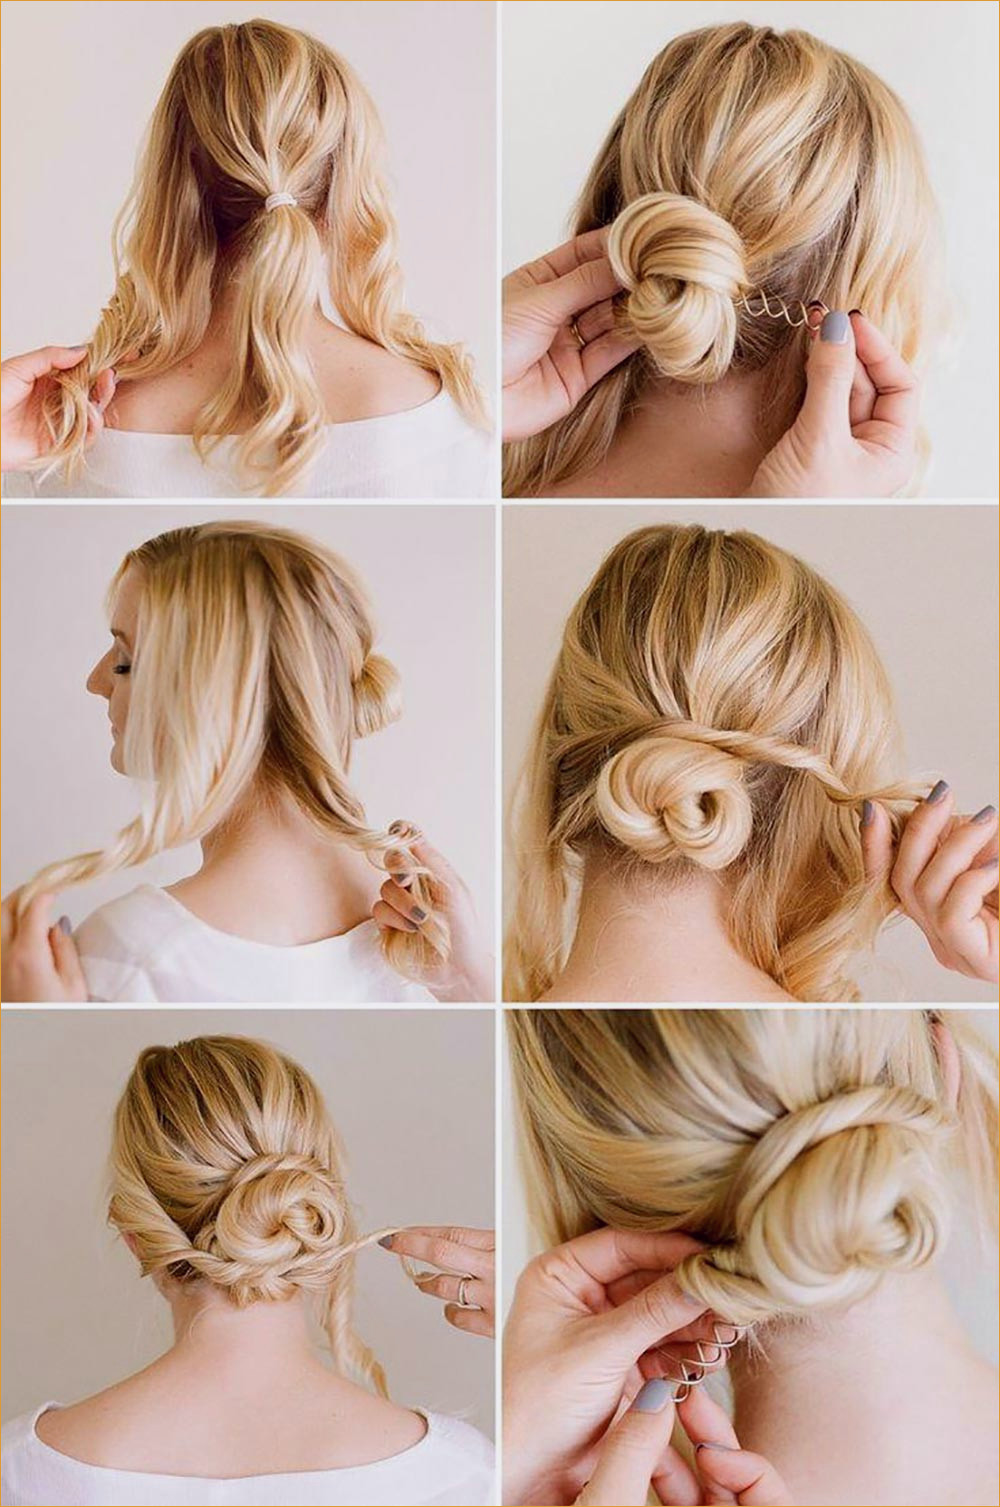 Using Hairpins